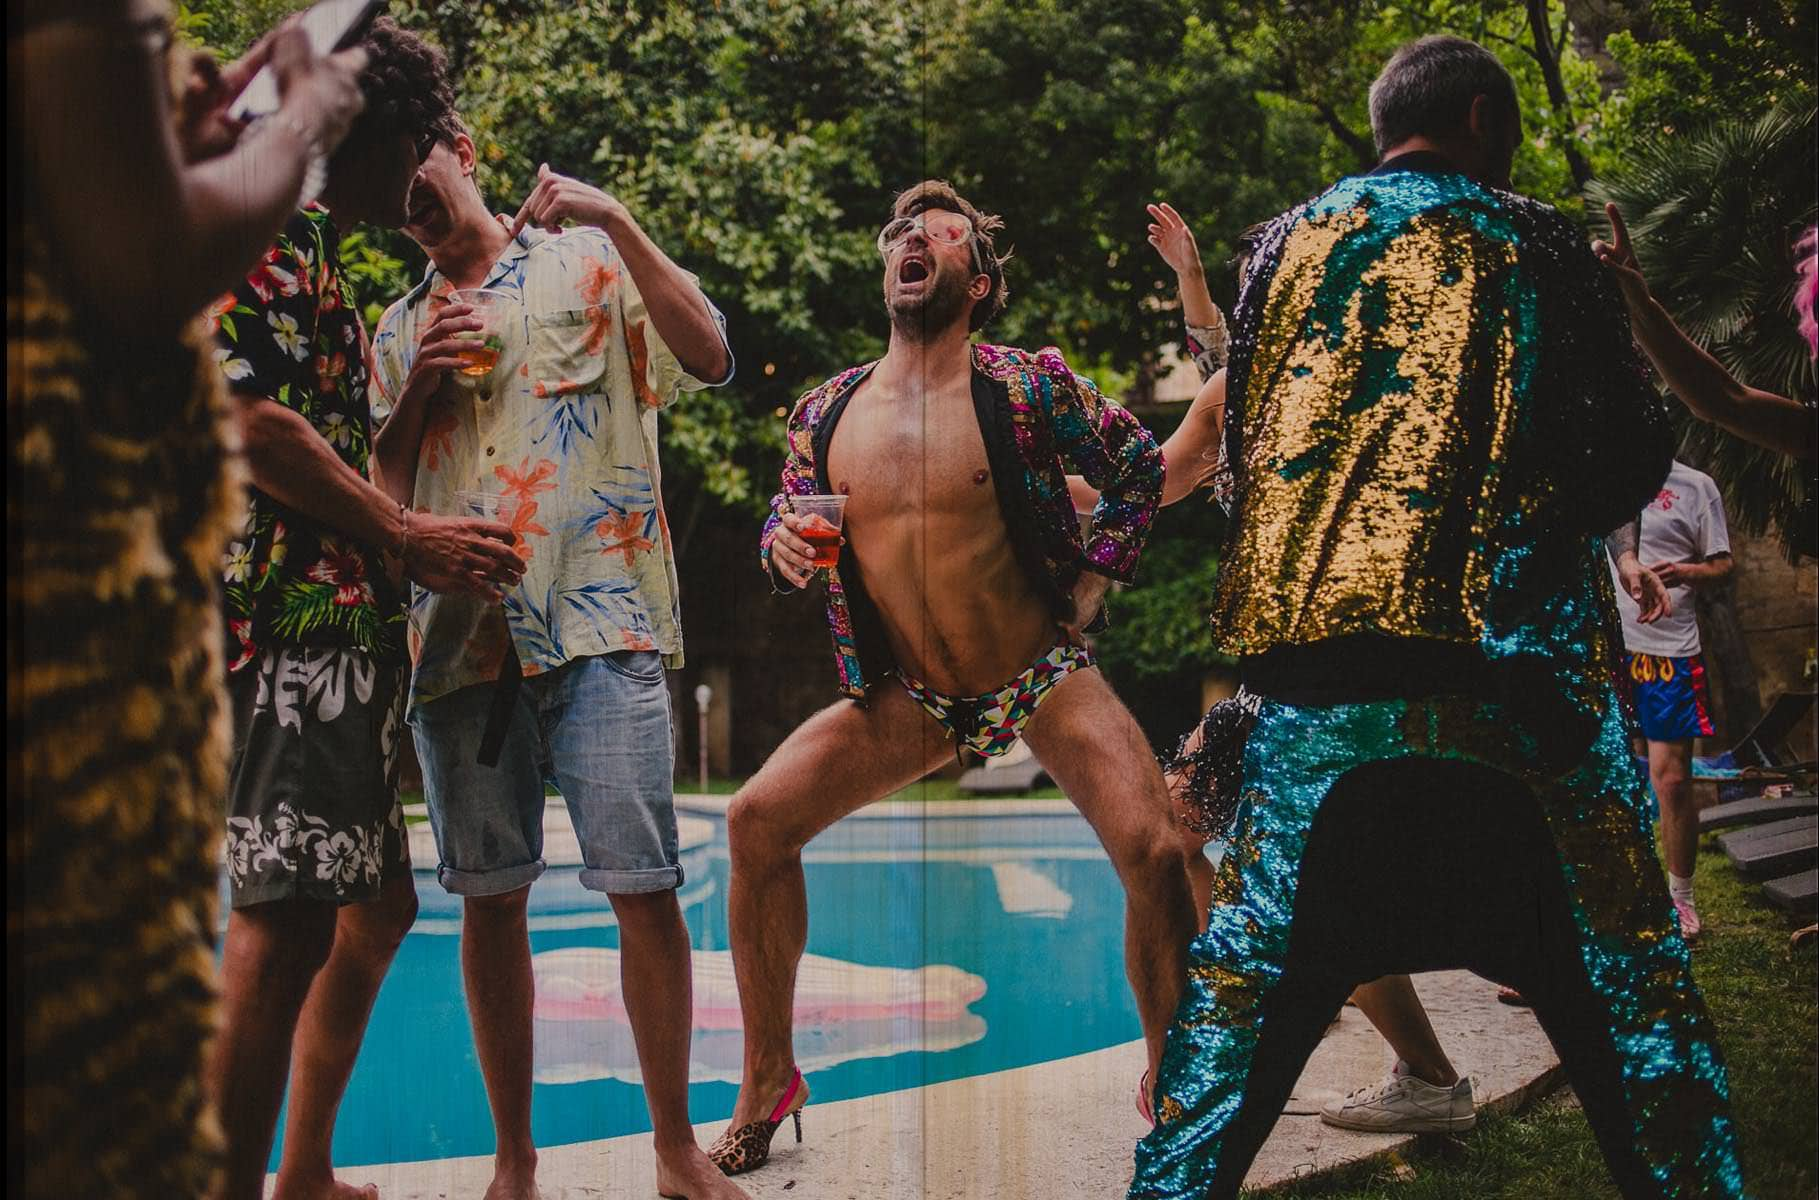 a guy dancing with heels in a pool party after a wedding